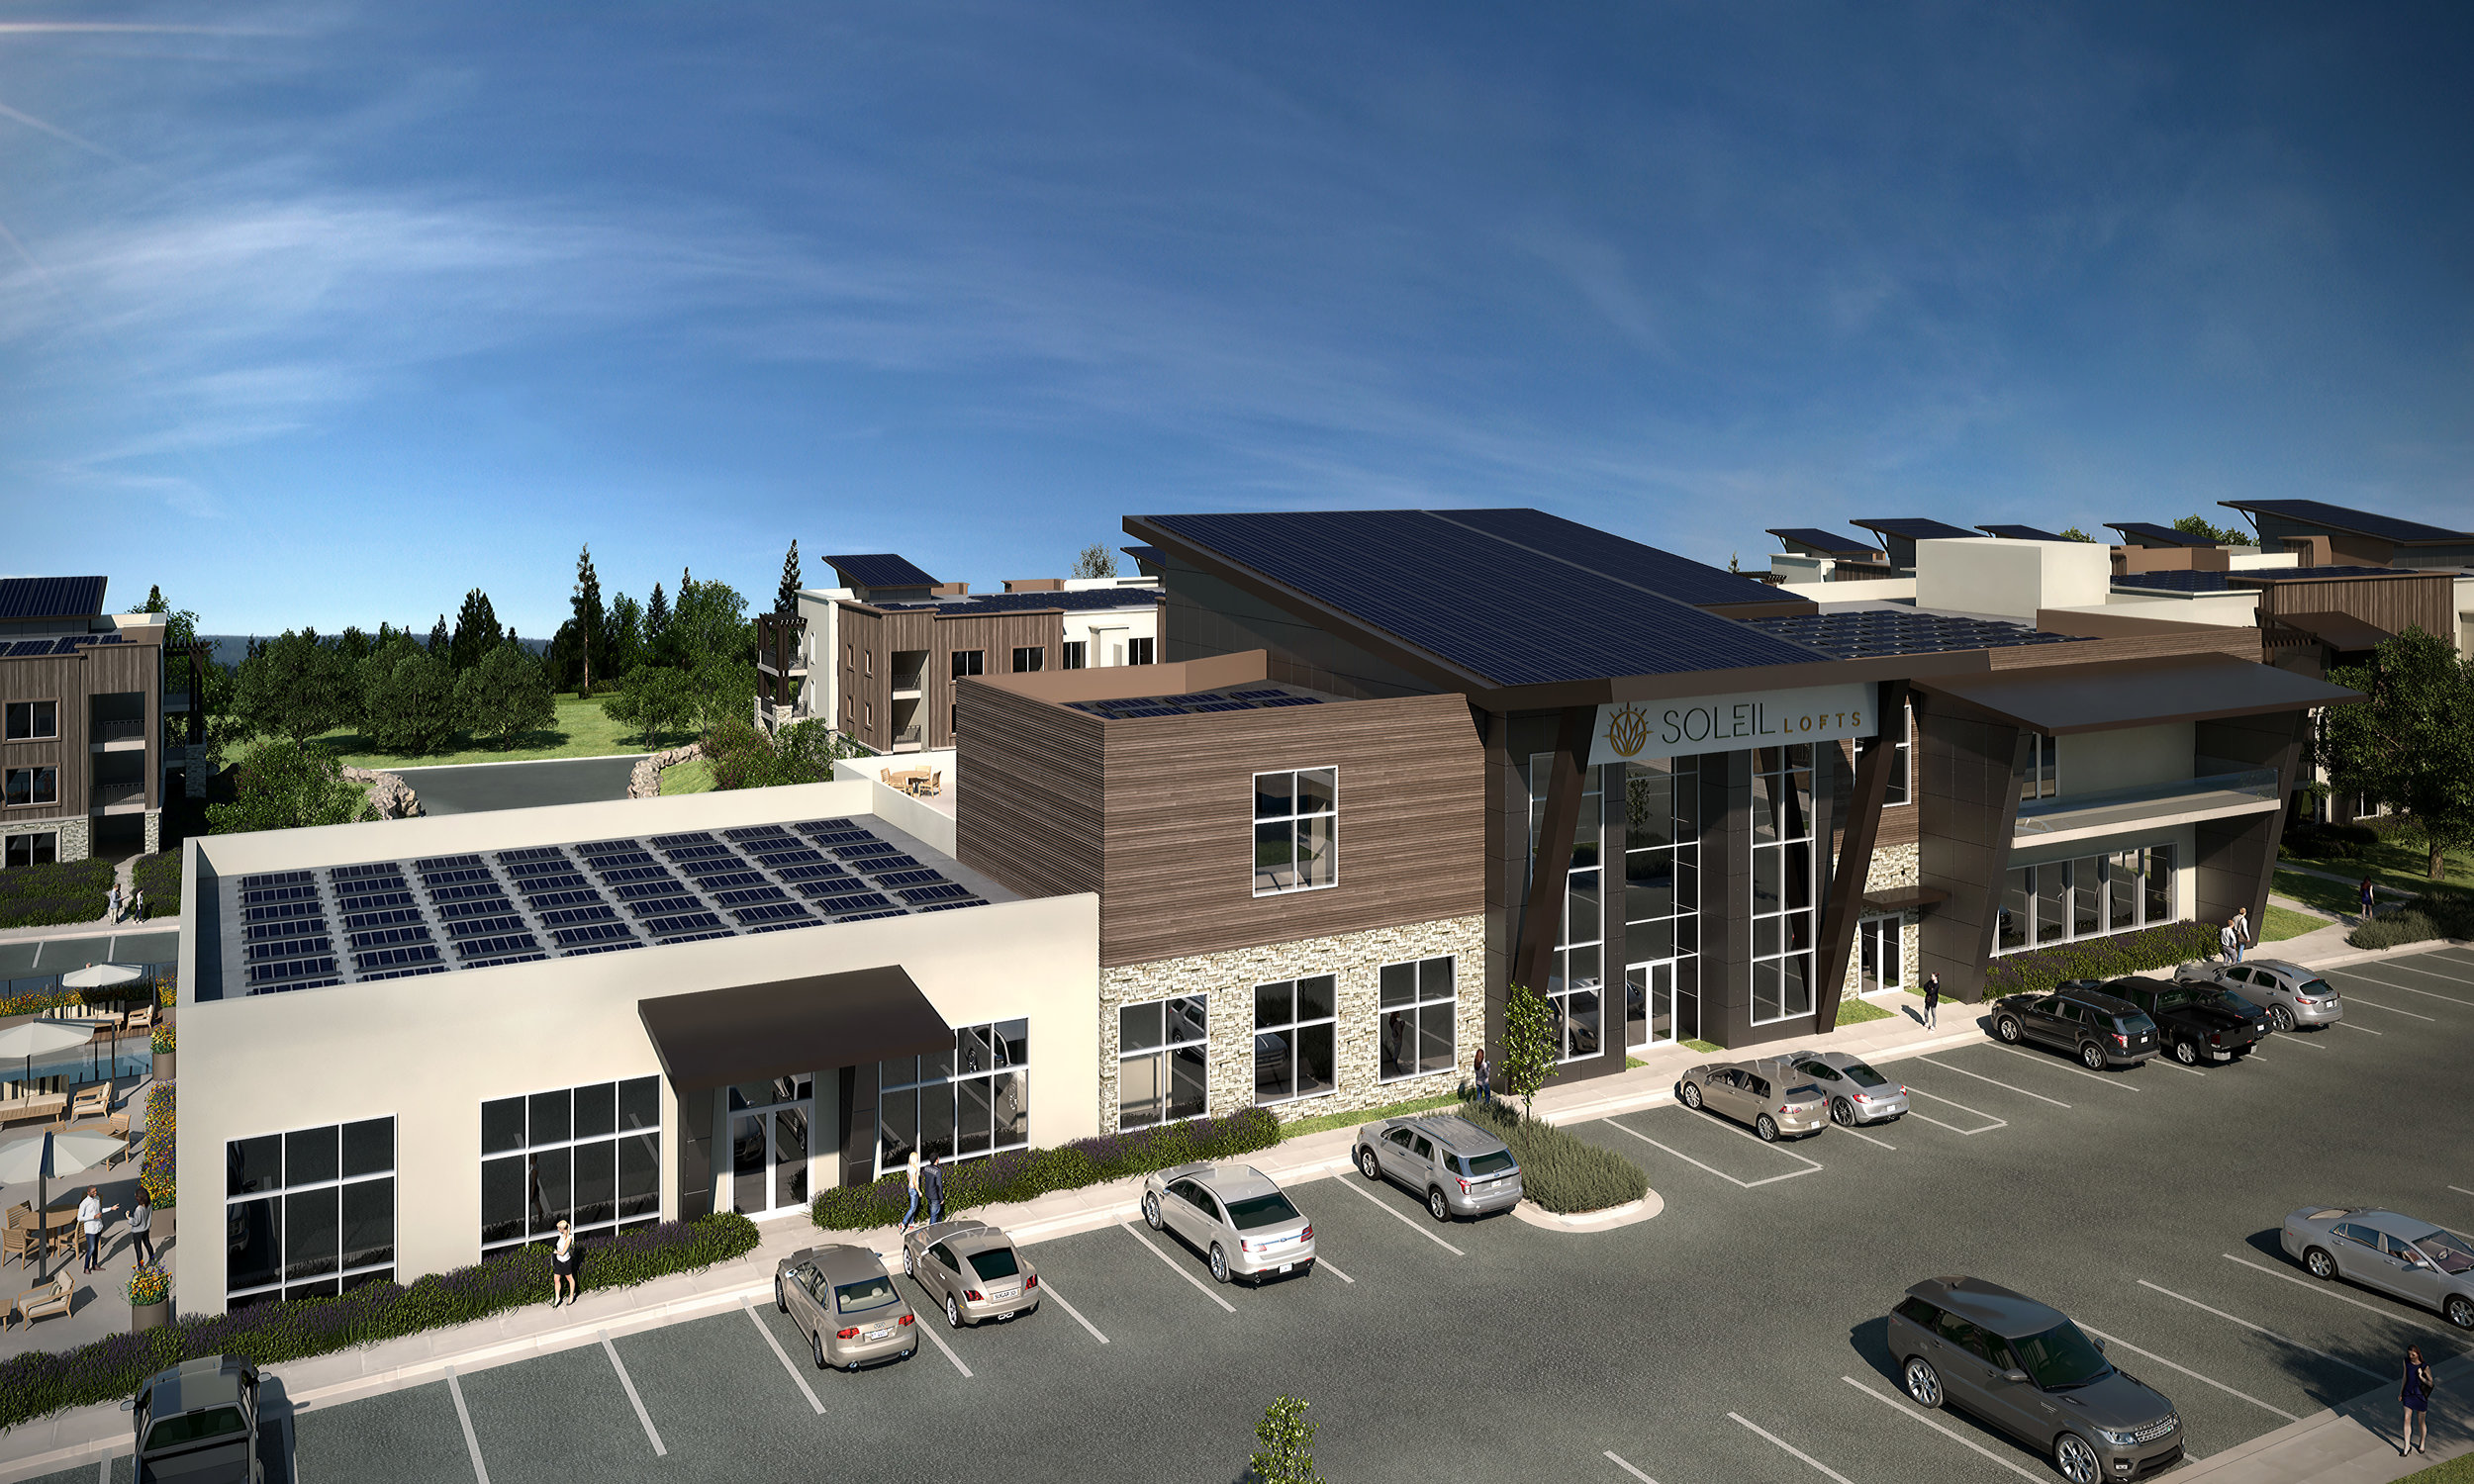 Soleil Lofts clubhouse 1MW battery and solar